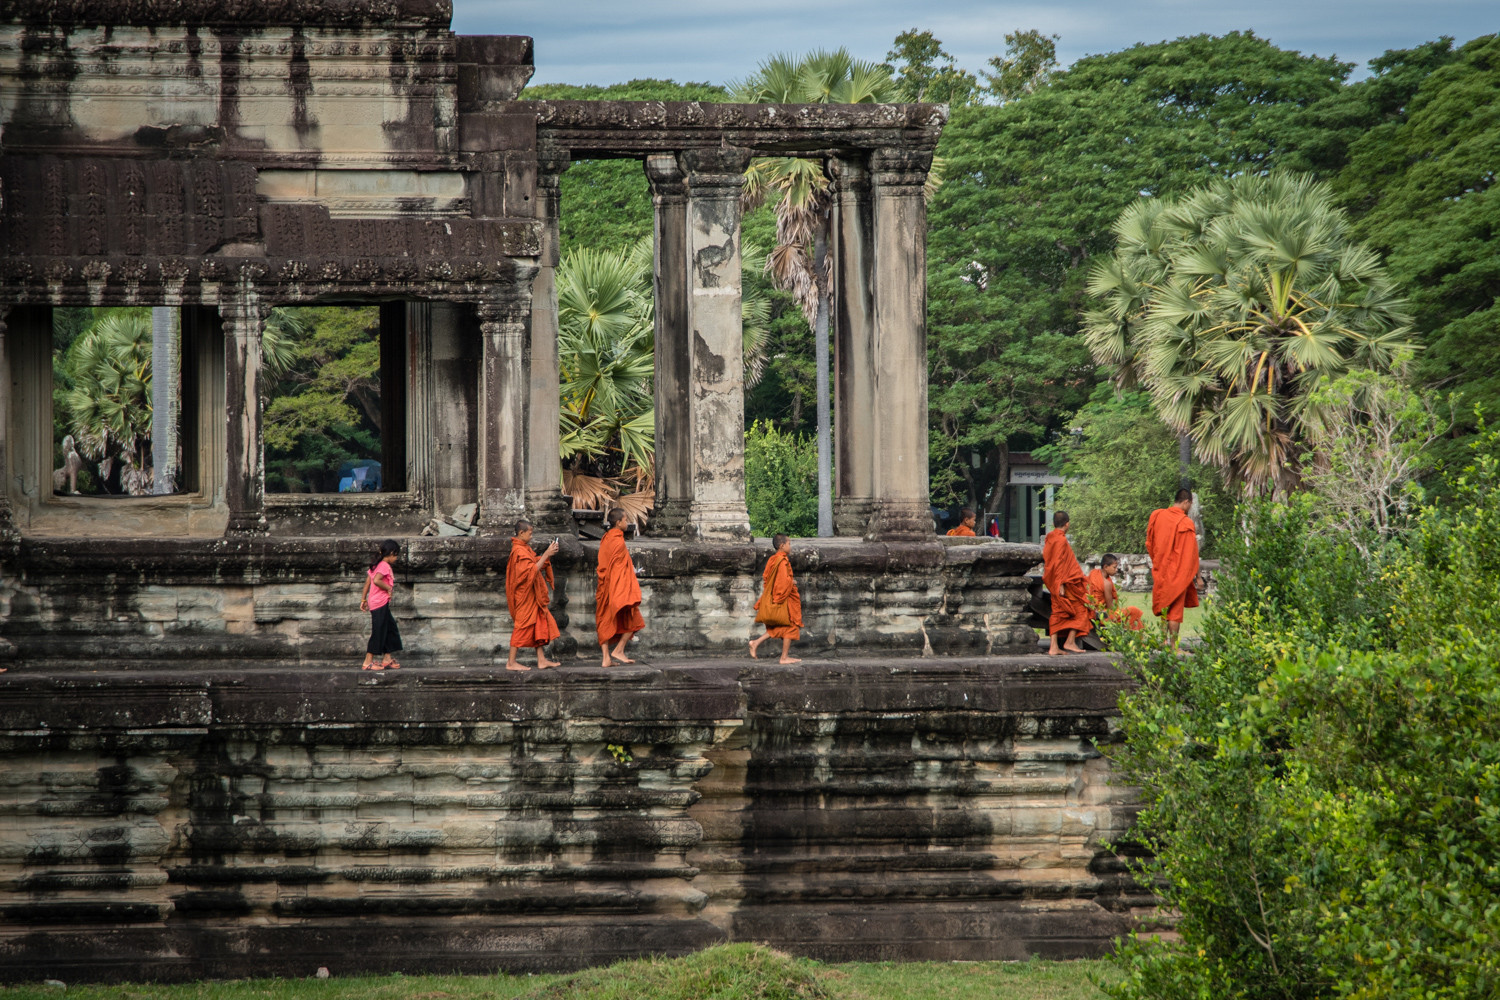 cambodia-photo-tours-angkor-wat-through-the-lens